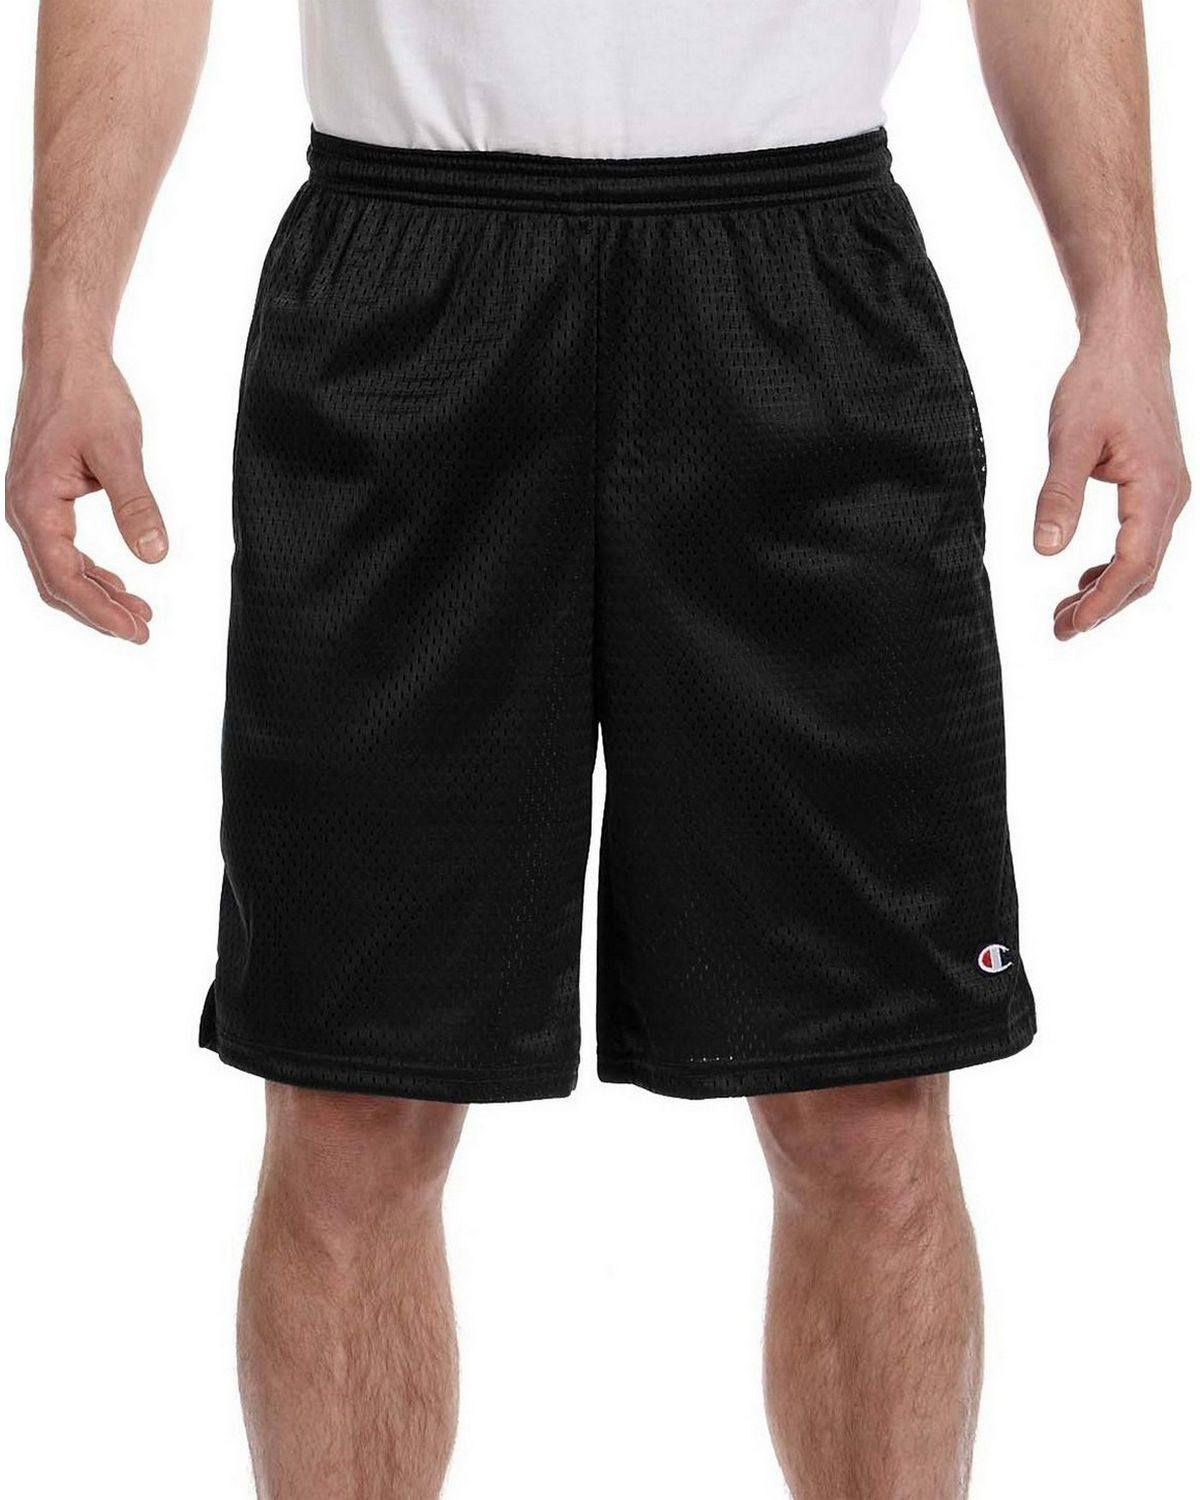 Champion 81622 Shorts with Pockets - Black - XL 81622